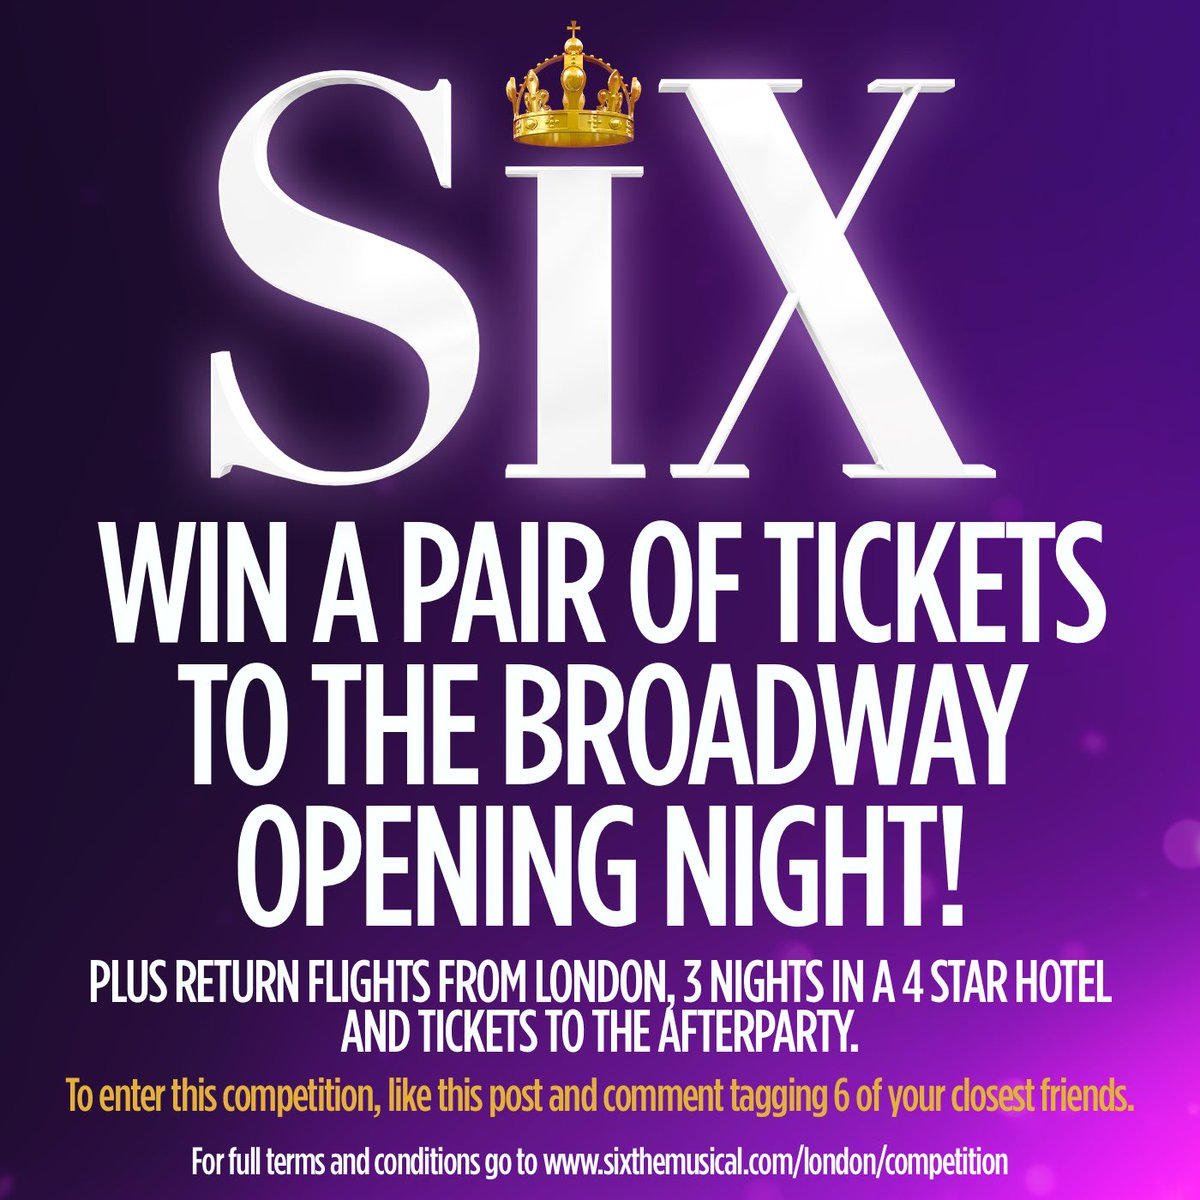 Hold on to your crowns, Queens…it's competition time!  Win 2 flights to New York, 3 nights in a 4 star hotel, and a pair of tickets to the opening night of SIX on Broadway, plus tickets to the afterparty! To enter just retweet this post tagging 6 friends  #Queendom<br>http://pic.twitter.com/19IYfz2JA4